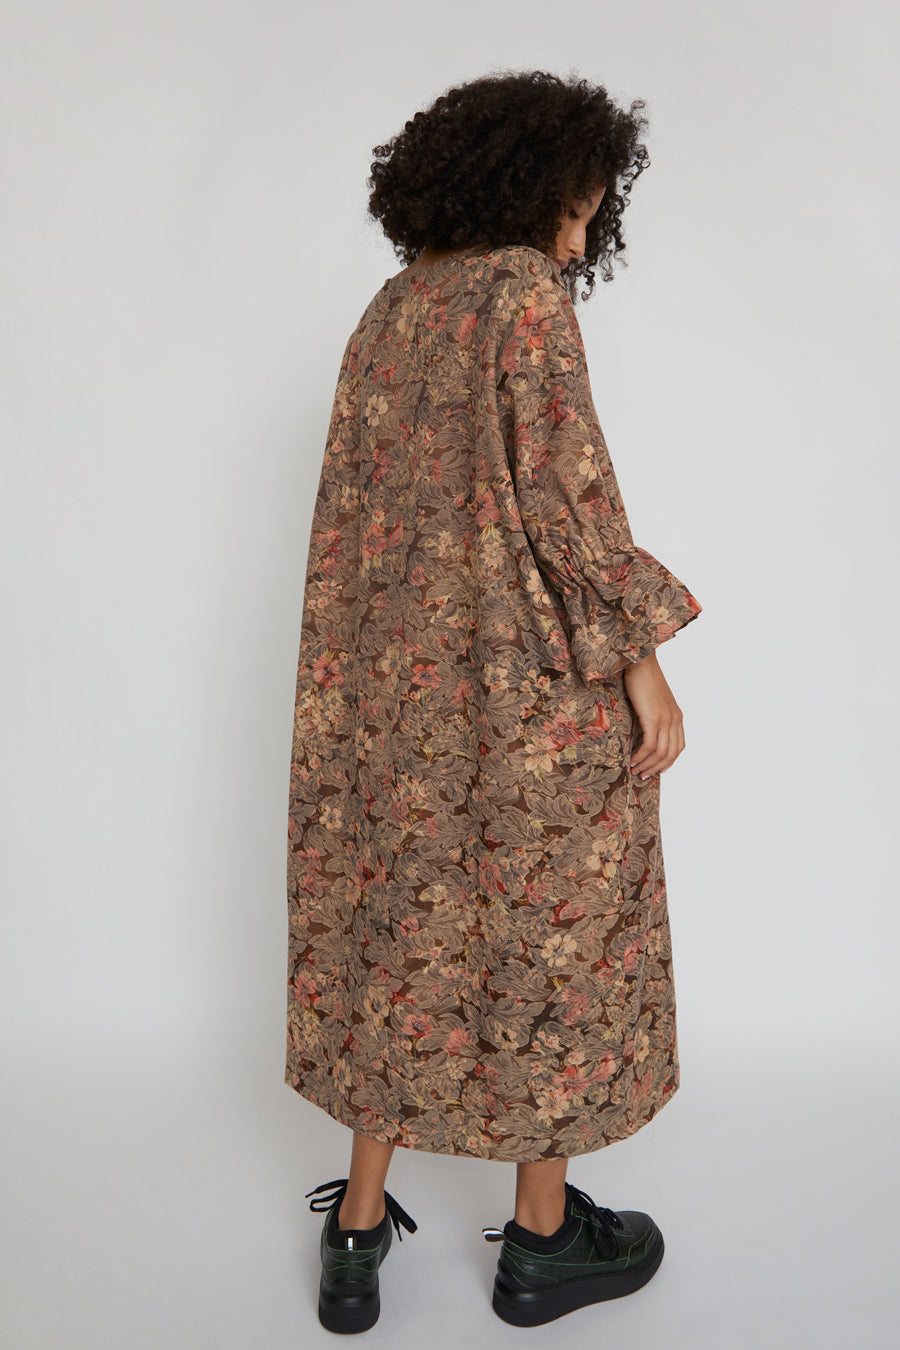 323 Judith Dress in Deadstock Couch